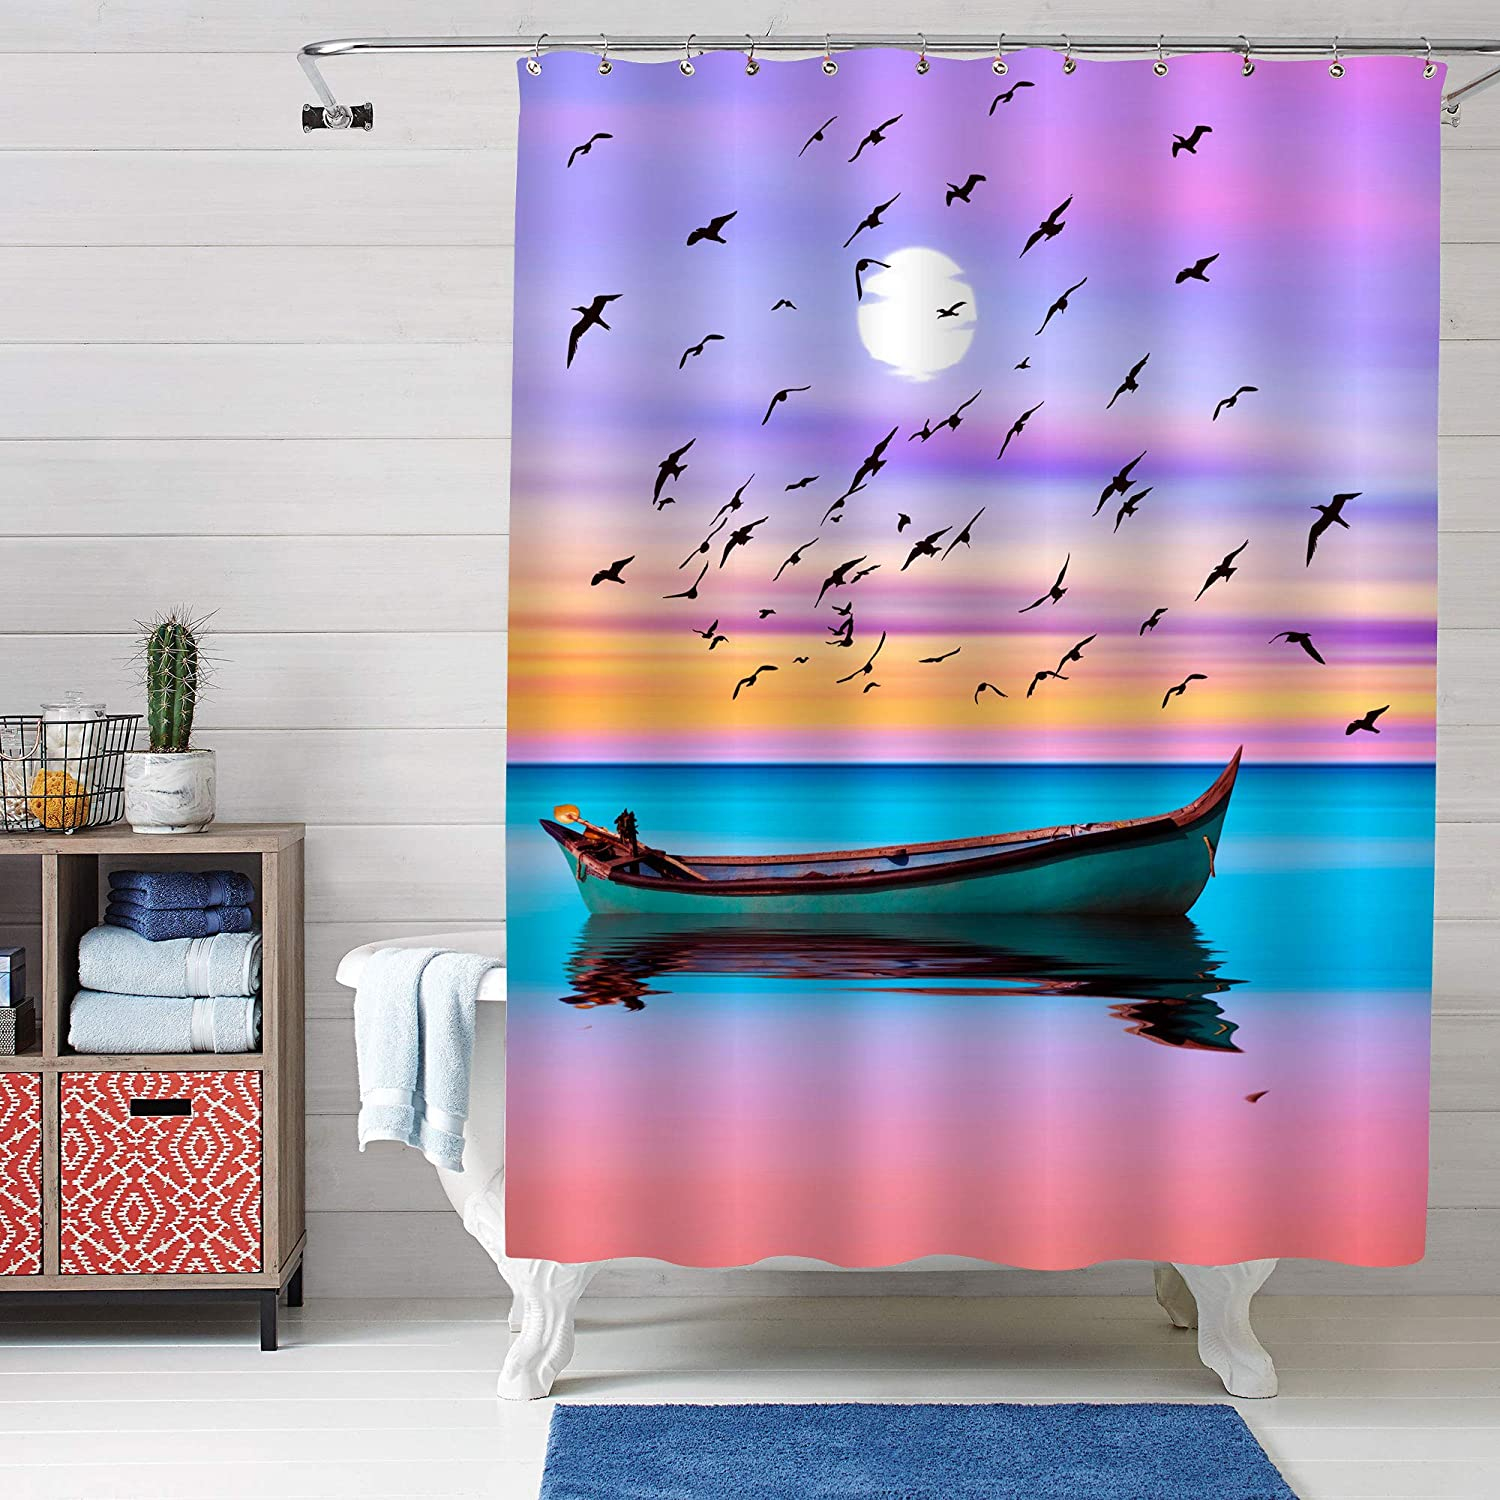 Turquoise White Artistic Hand Painting Bright Waterlily Art Deco Shower Curtain for Spa Spiritual Relaxation Decor MitoVilla Realistic Lotus Flower Shower Decorations 72 W by 72 L